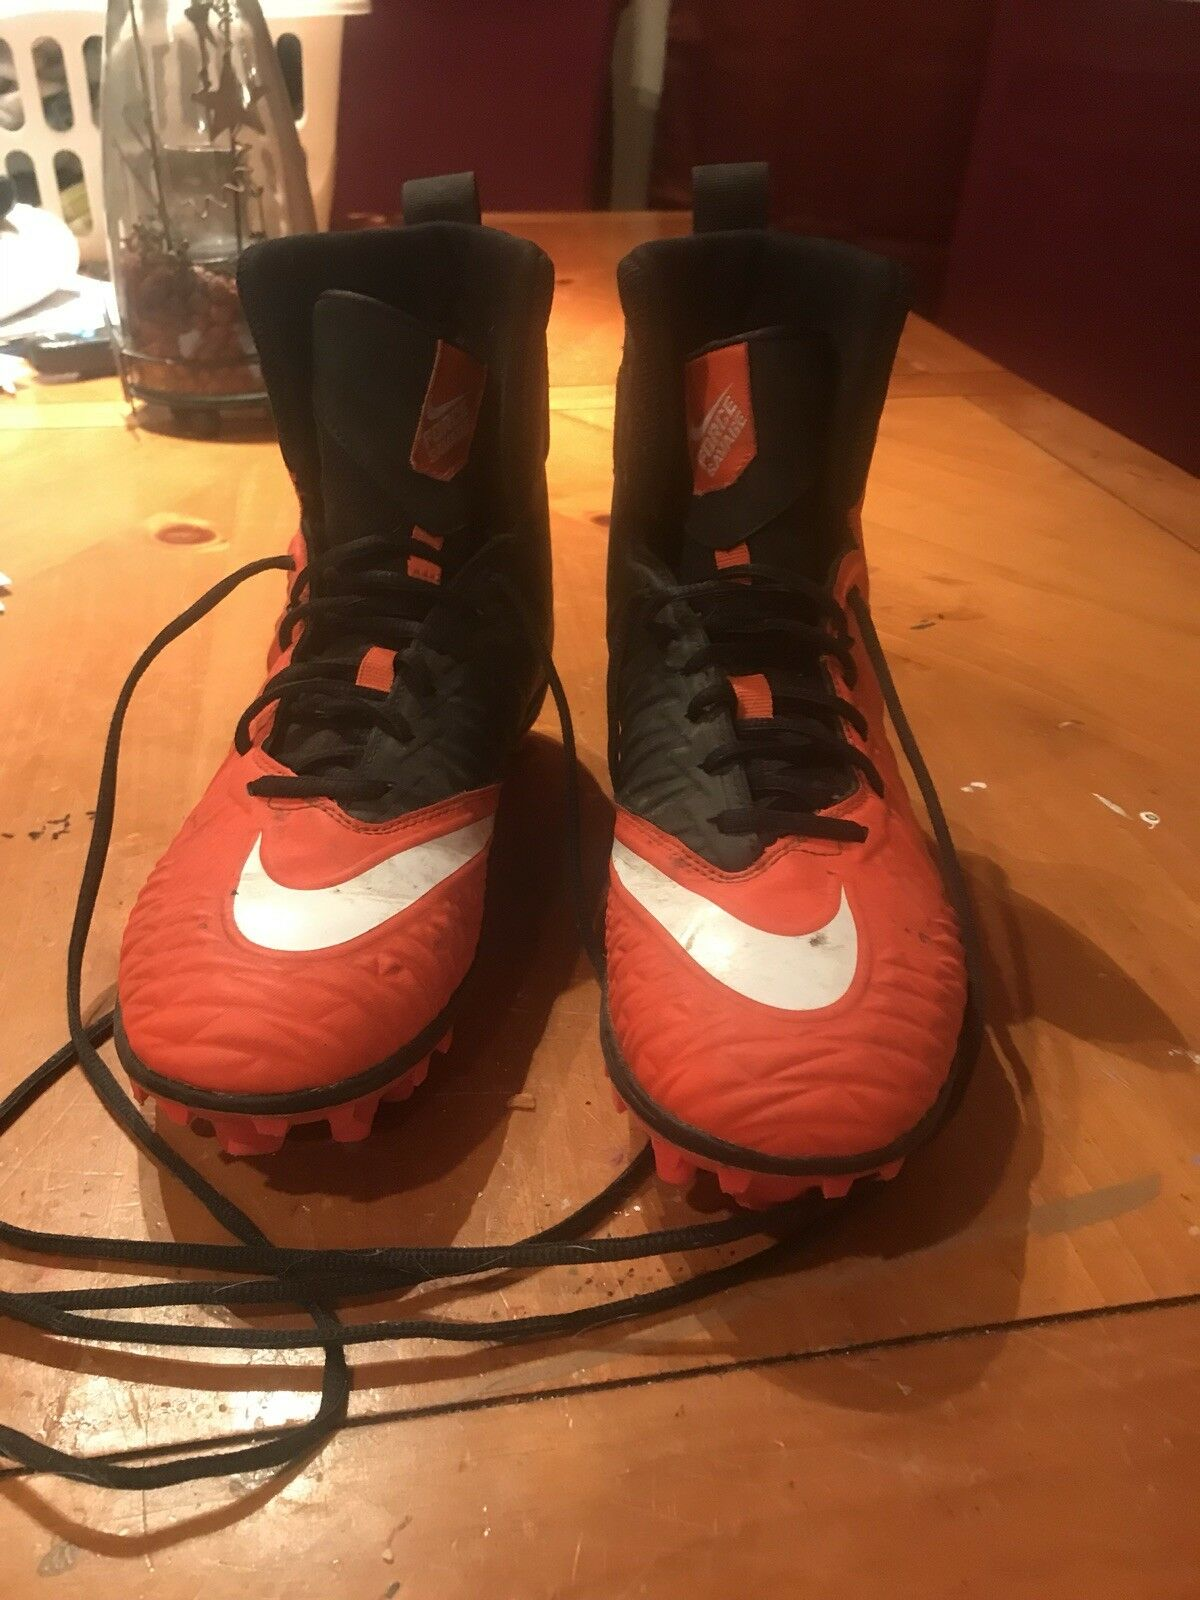 nike force savage cleats  Cheap and fashionable